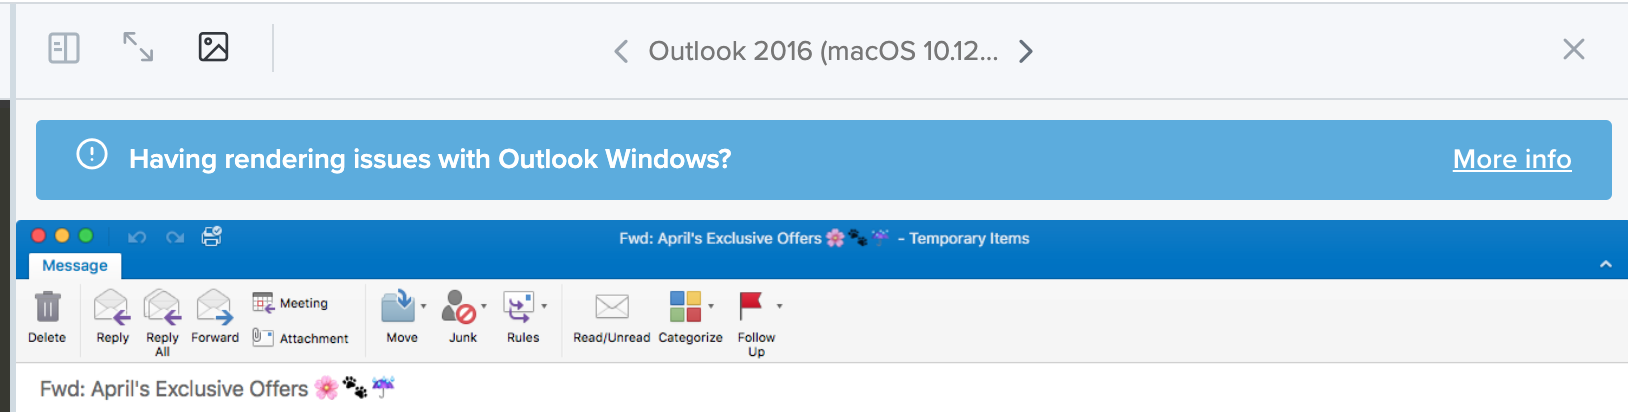 rendering issues notification bar in Outlook 2016 email preview in Litmus Builder